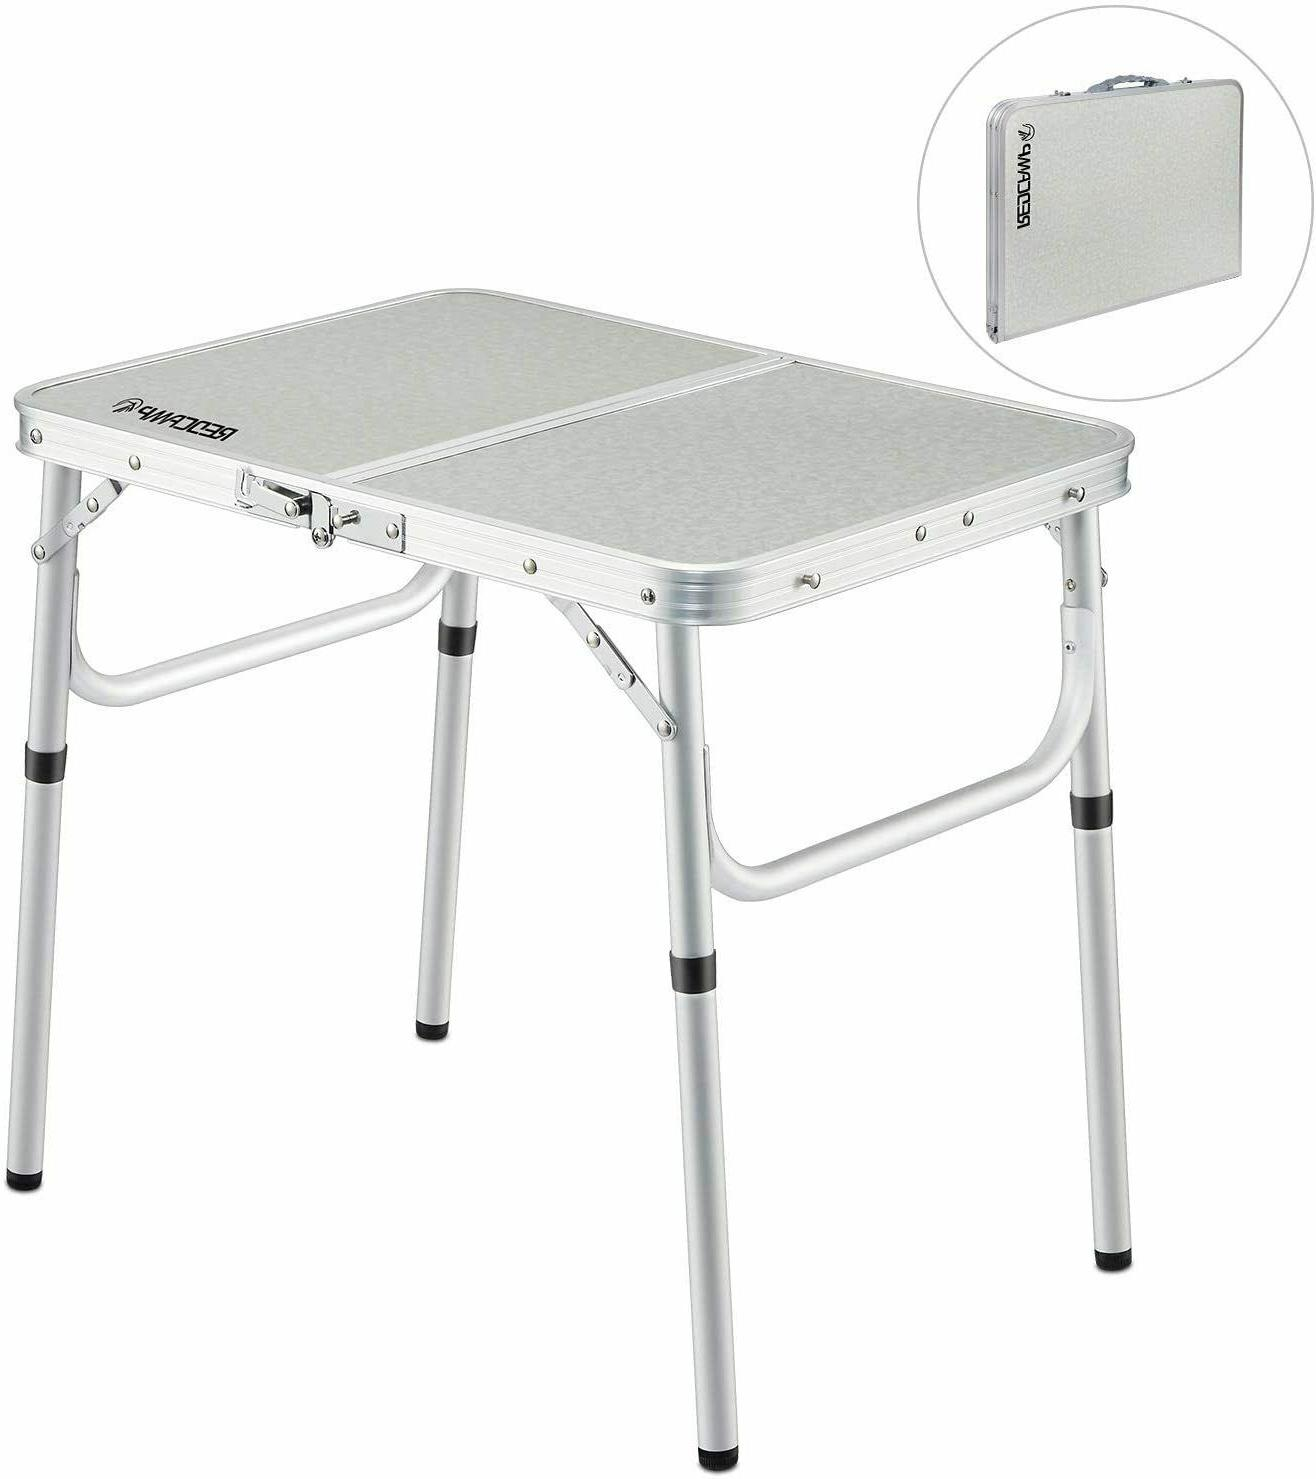 small folding camping table portable adjustable white